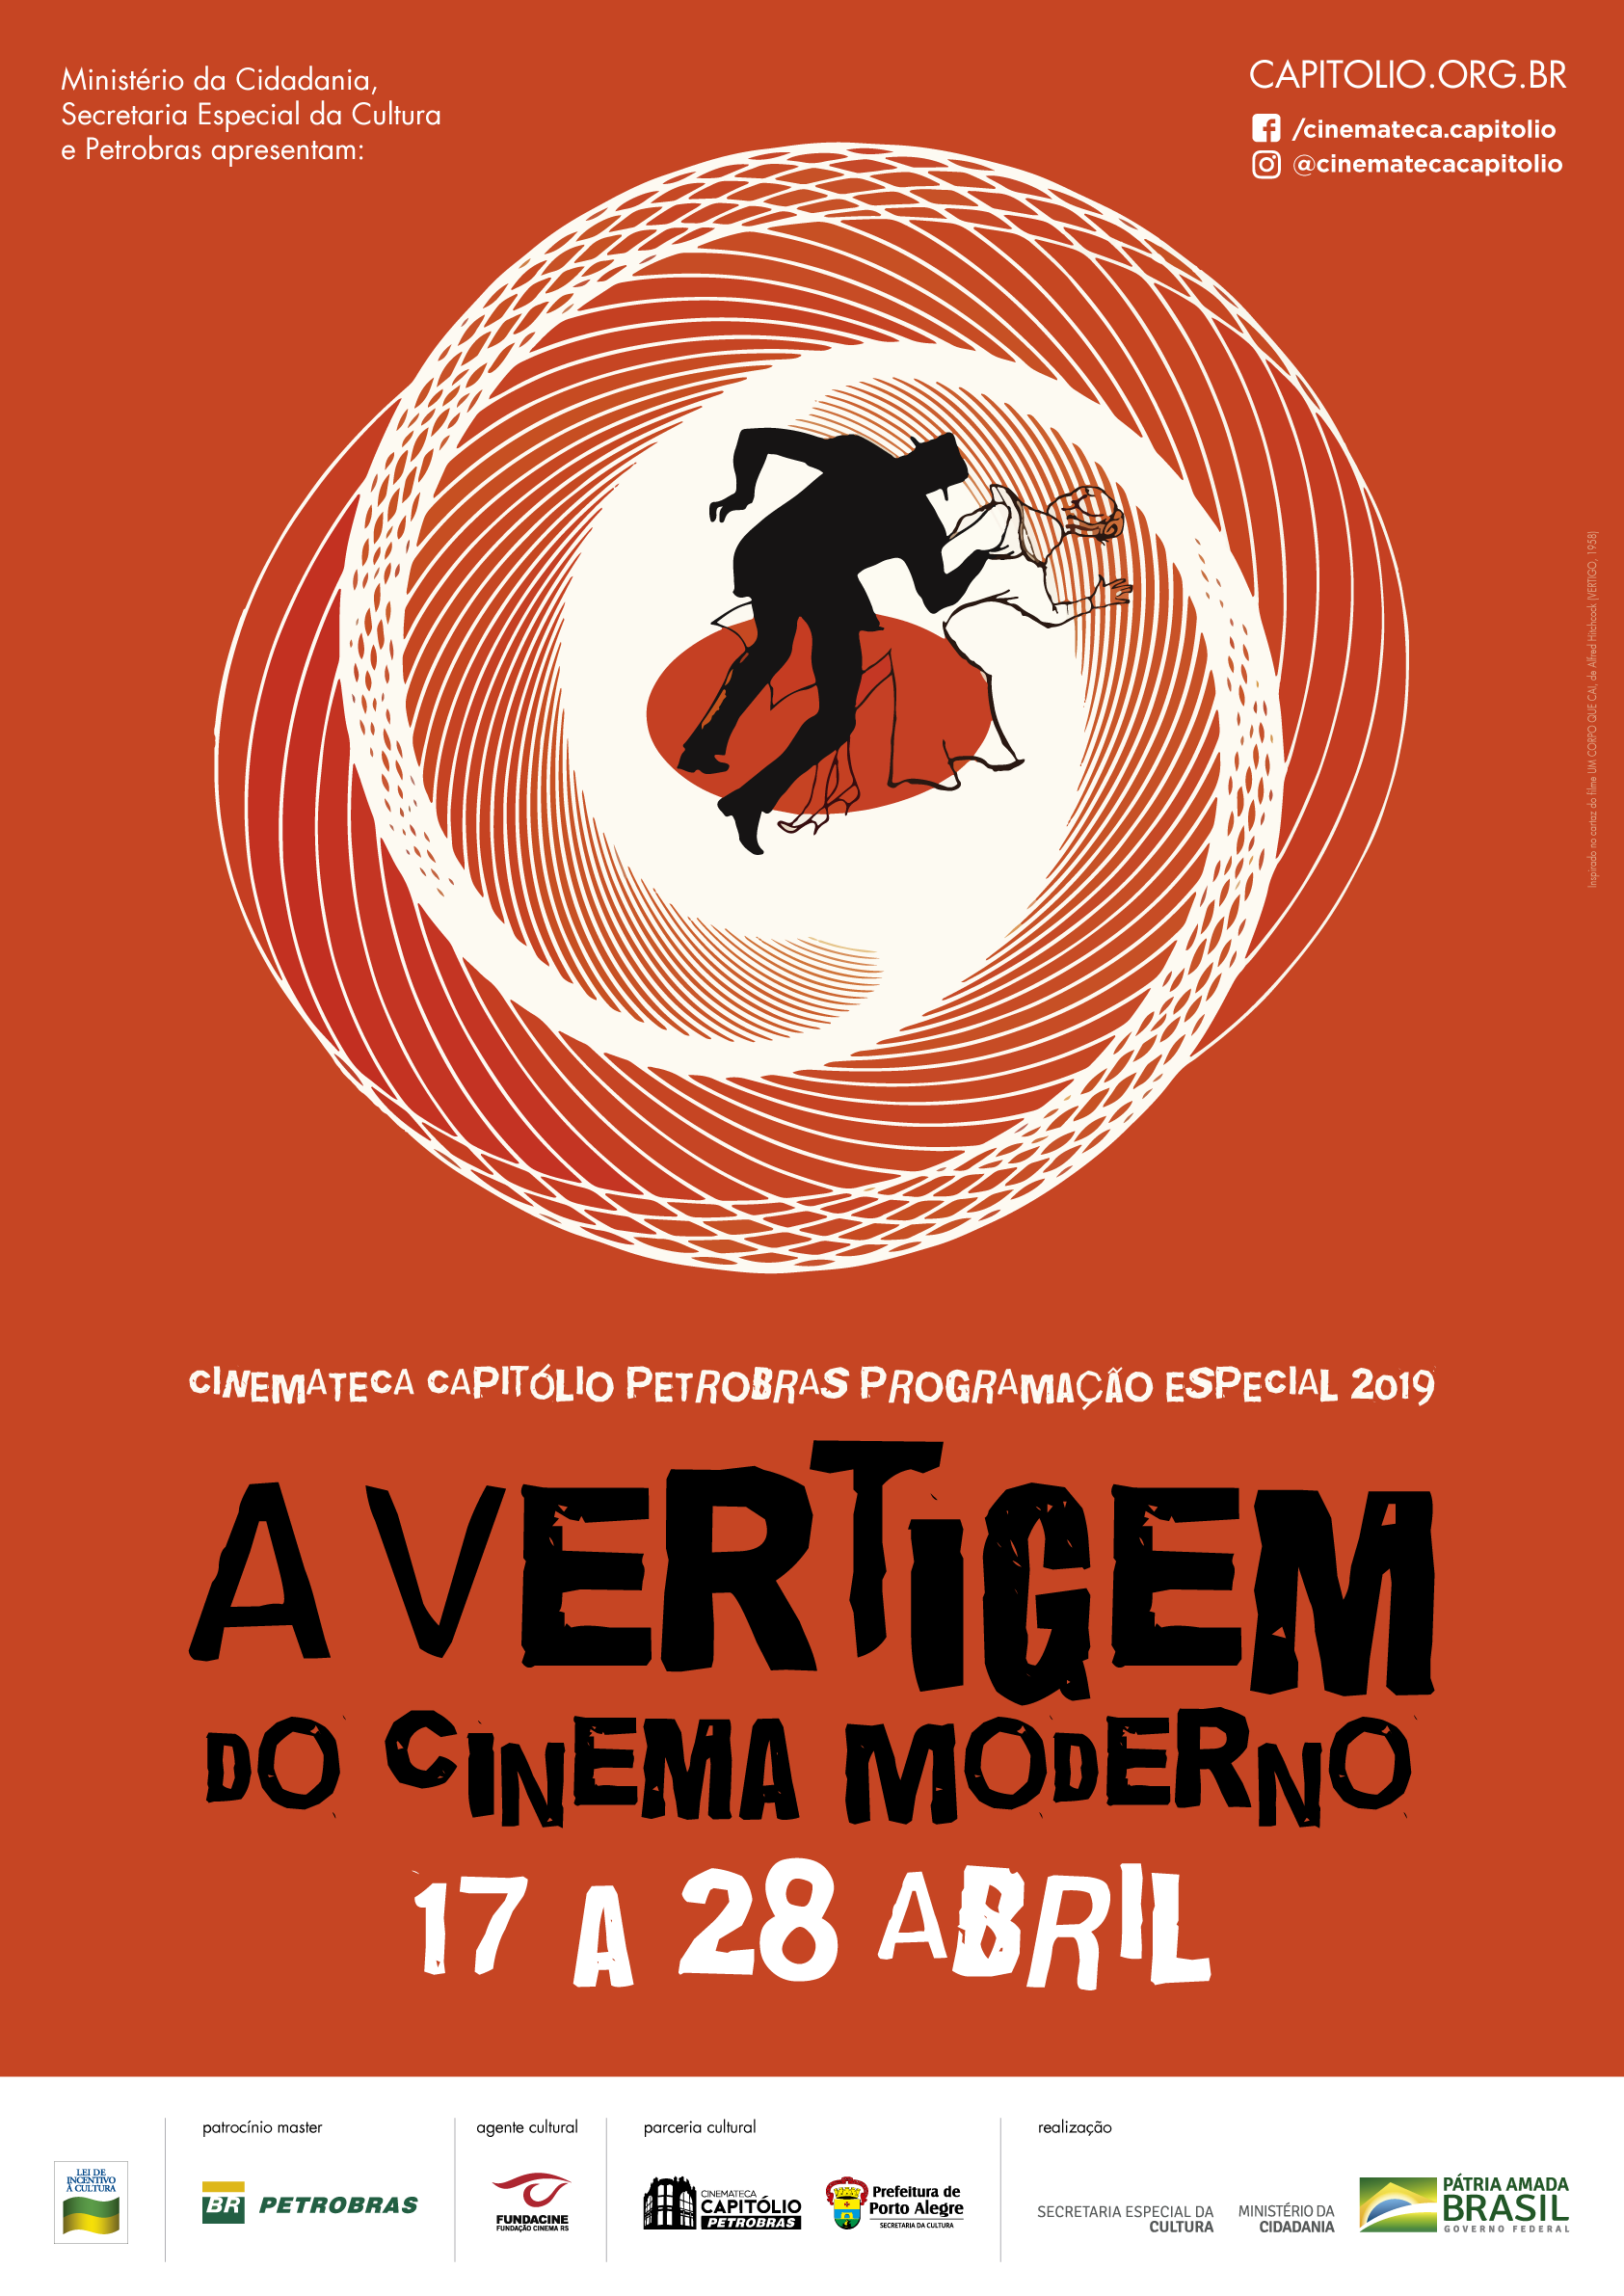 A Vertigem do Cinema Moderno